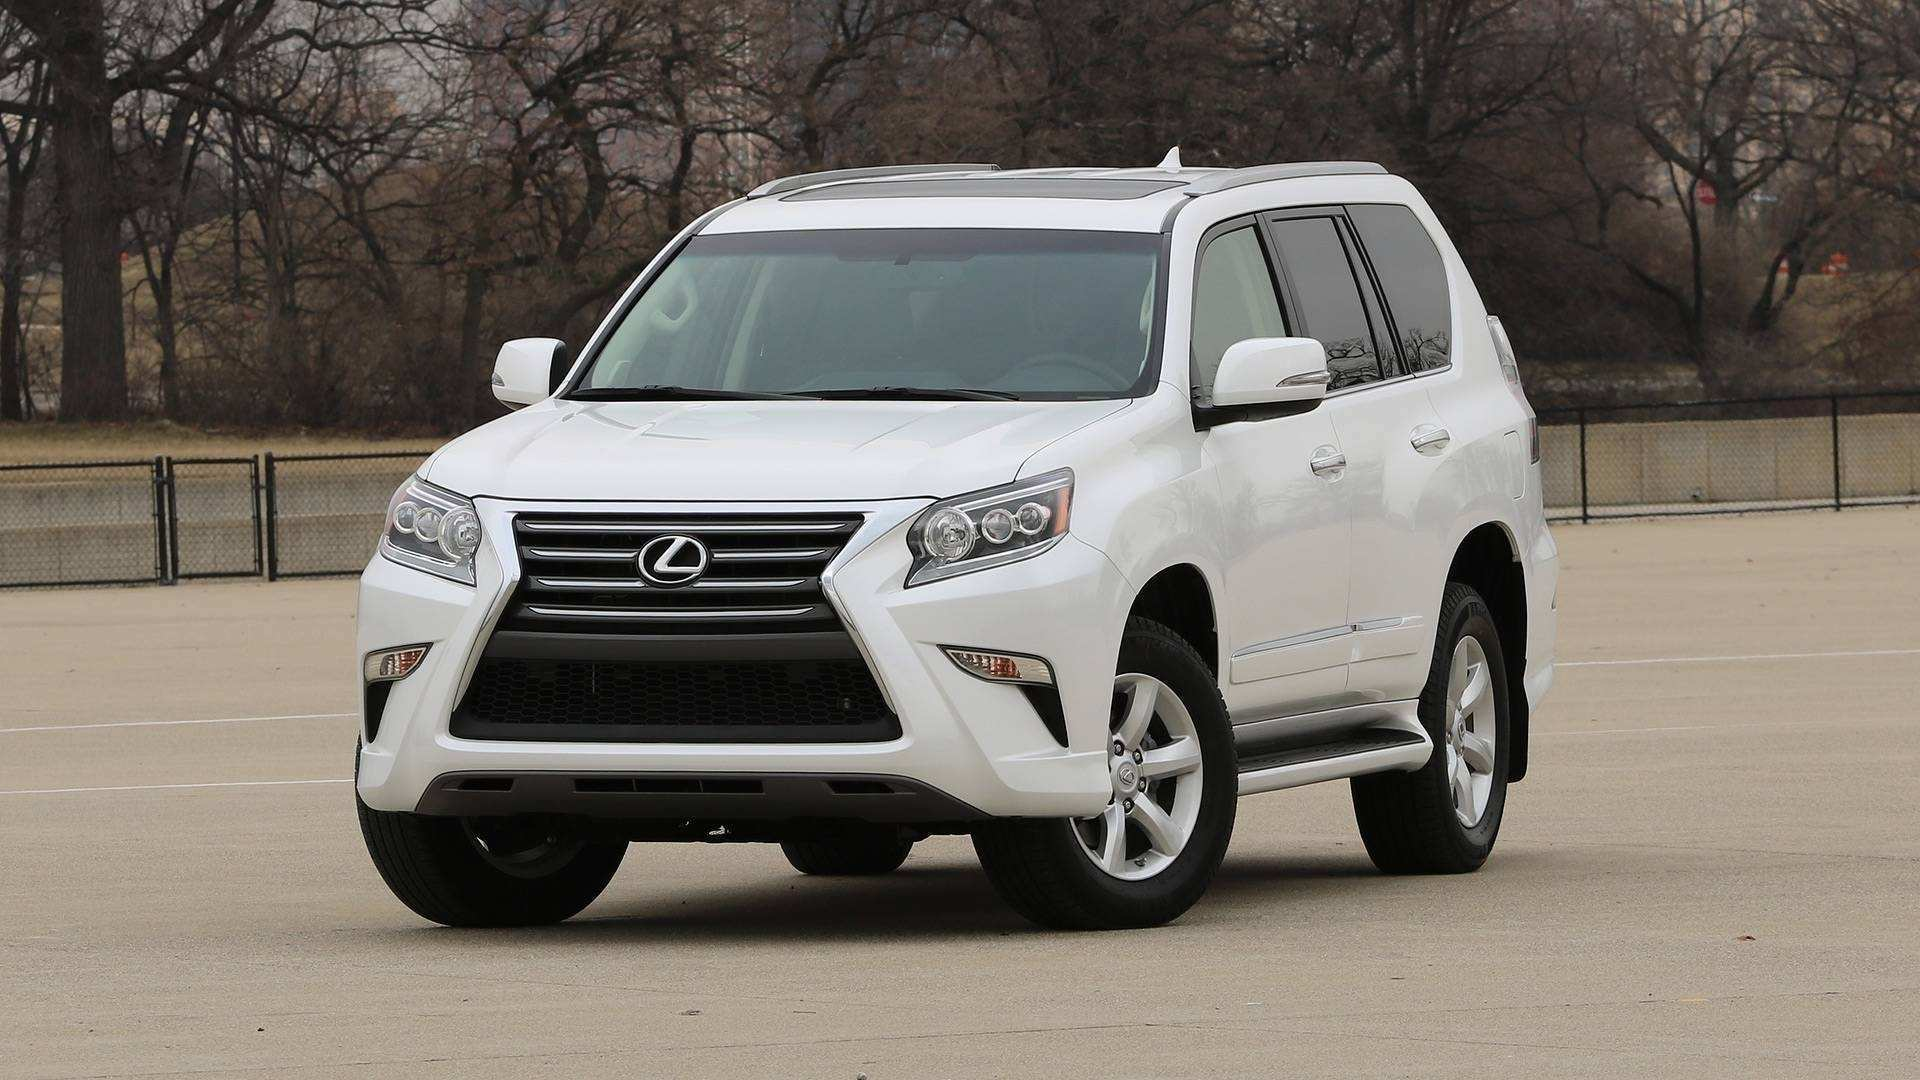 18 Concept of When Will 2020 Lexus Gx Be Released New Concept with When Will 2020 Lexus Gx Be Released